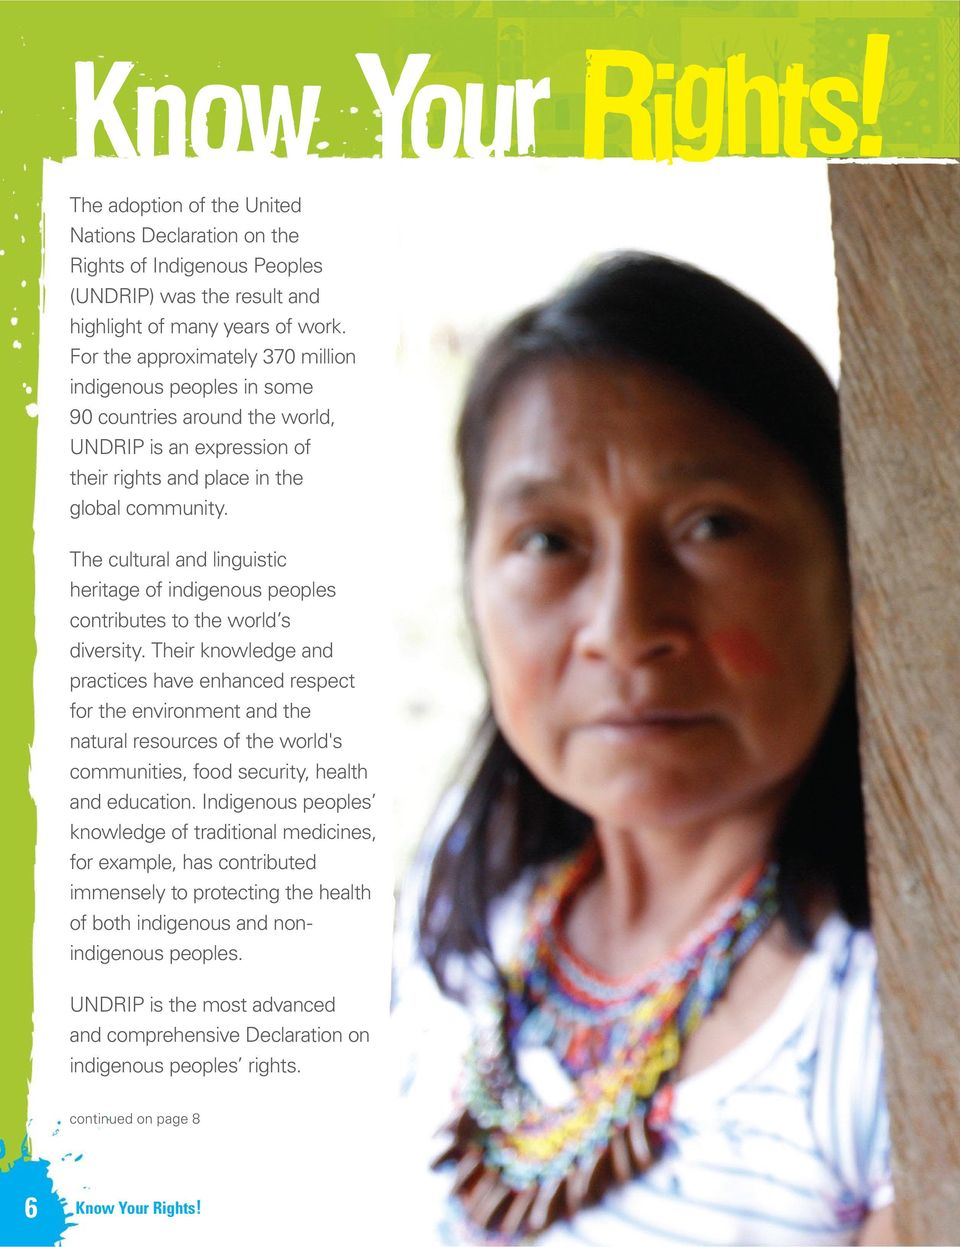 The cultural and linguistic heritage of indigenous peoples contributes to the world s diversity.